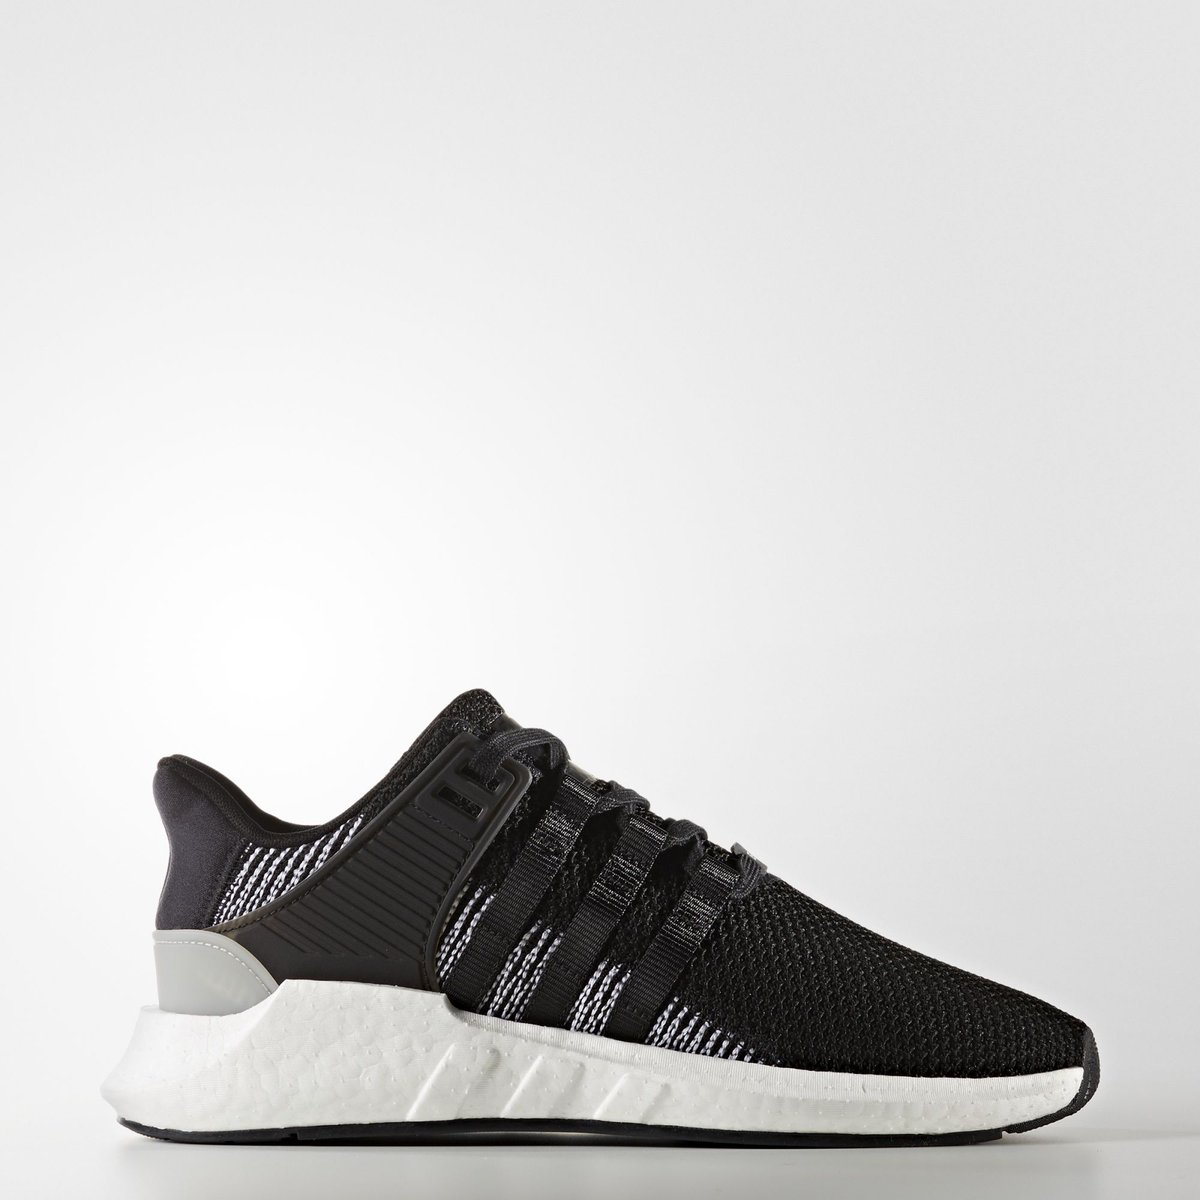 Coming soon on #adidas US. adidas EQT August Releases. —&gt;  http:// bit.ly/2vmgMgF  &nbsp;  <br>http://pic.twitter.com/jKOv3ky5dB